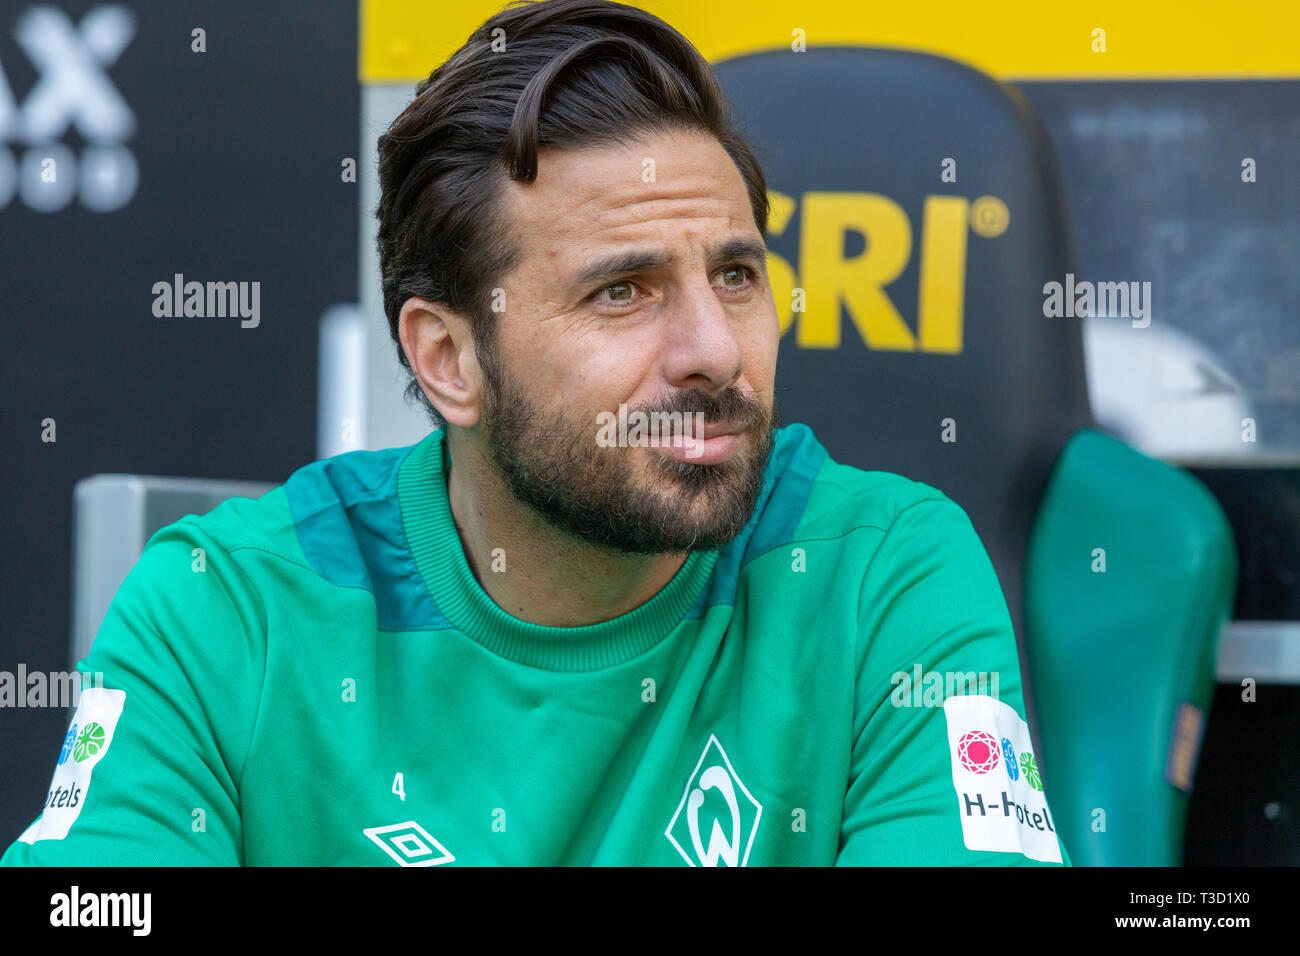 sports, football, Bundesliga, 2018/2019, Borussia Moenchengladbach vs SV Werder Bremen 1-1, Stadium Borussia Park, players bench, Claudio Pizarro (Bremen), DFL REGULATIONS PROHIBIT ANY USE OF PHOTOGRAPHS AS IMAGE SEQUENCES AND/OR QUASI-VIDEO - Stock Image